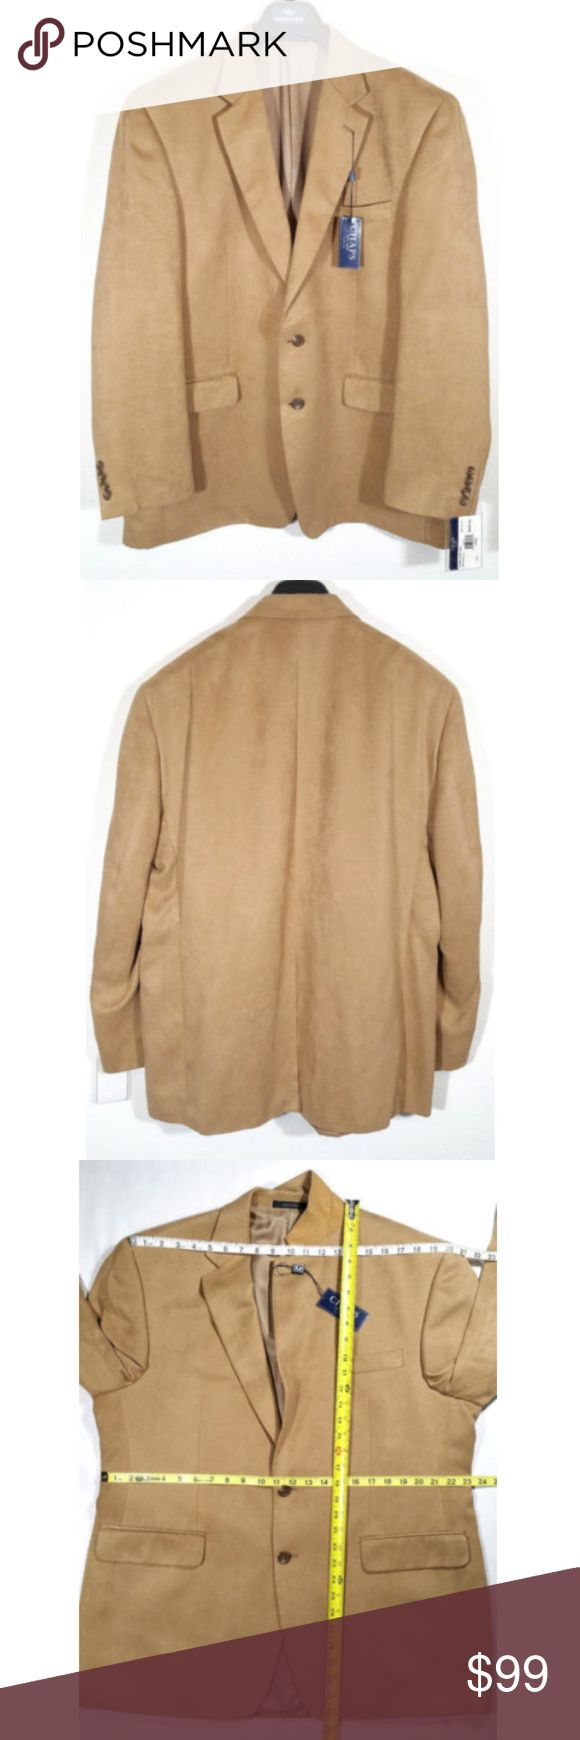 "Chaps Men Sport Jacket Coat Blazer Faux Suede 0855 New with Tags Chaps Men Chamois Faux Suede Sport Jacket Coat Blazer  - Tan Color - 3 front pockets, 3 interior pockets - Two button style. - Dry clean.  Size 44 Regular  Approx. measurements laying flat Shoulder to shoulder: 20"" Pit to pit: 24.5"" Length: 32.25"" Sleeve length: 25"" Waist: 23.25""  SKU 0855/50/CLE2 Chaps Jackets & Coats"